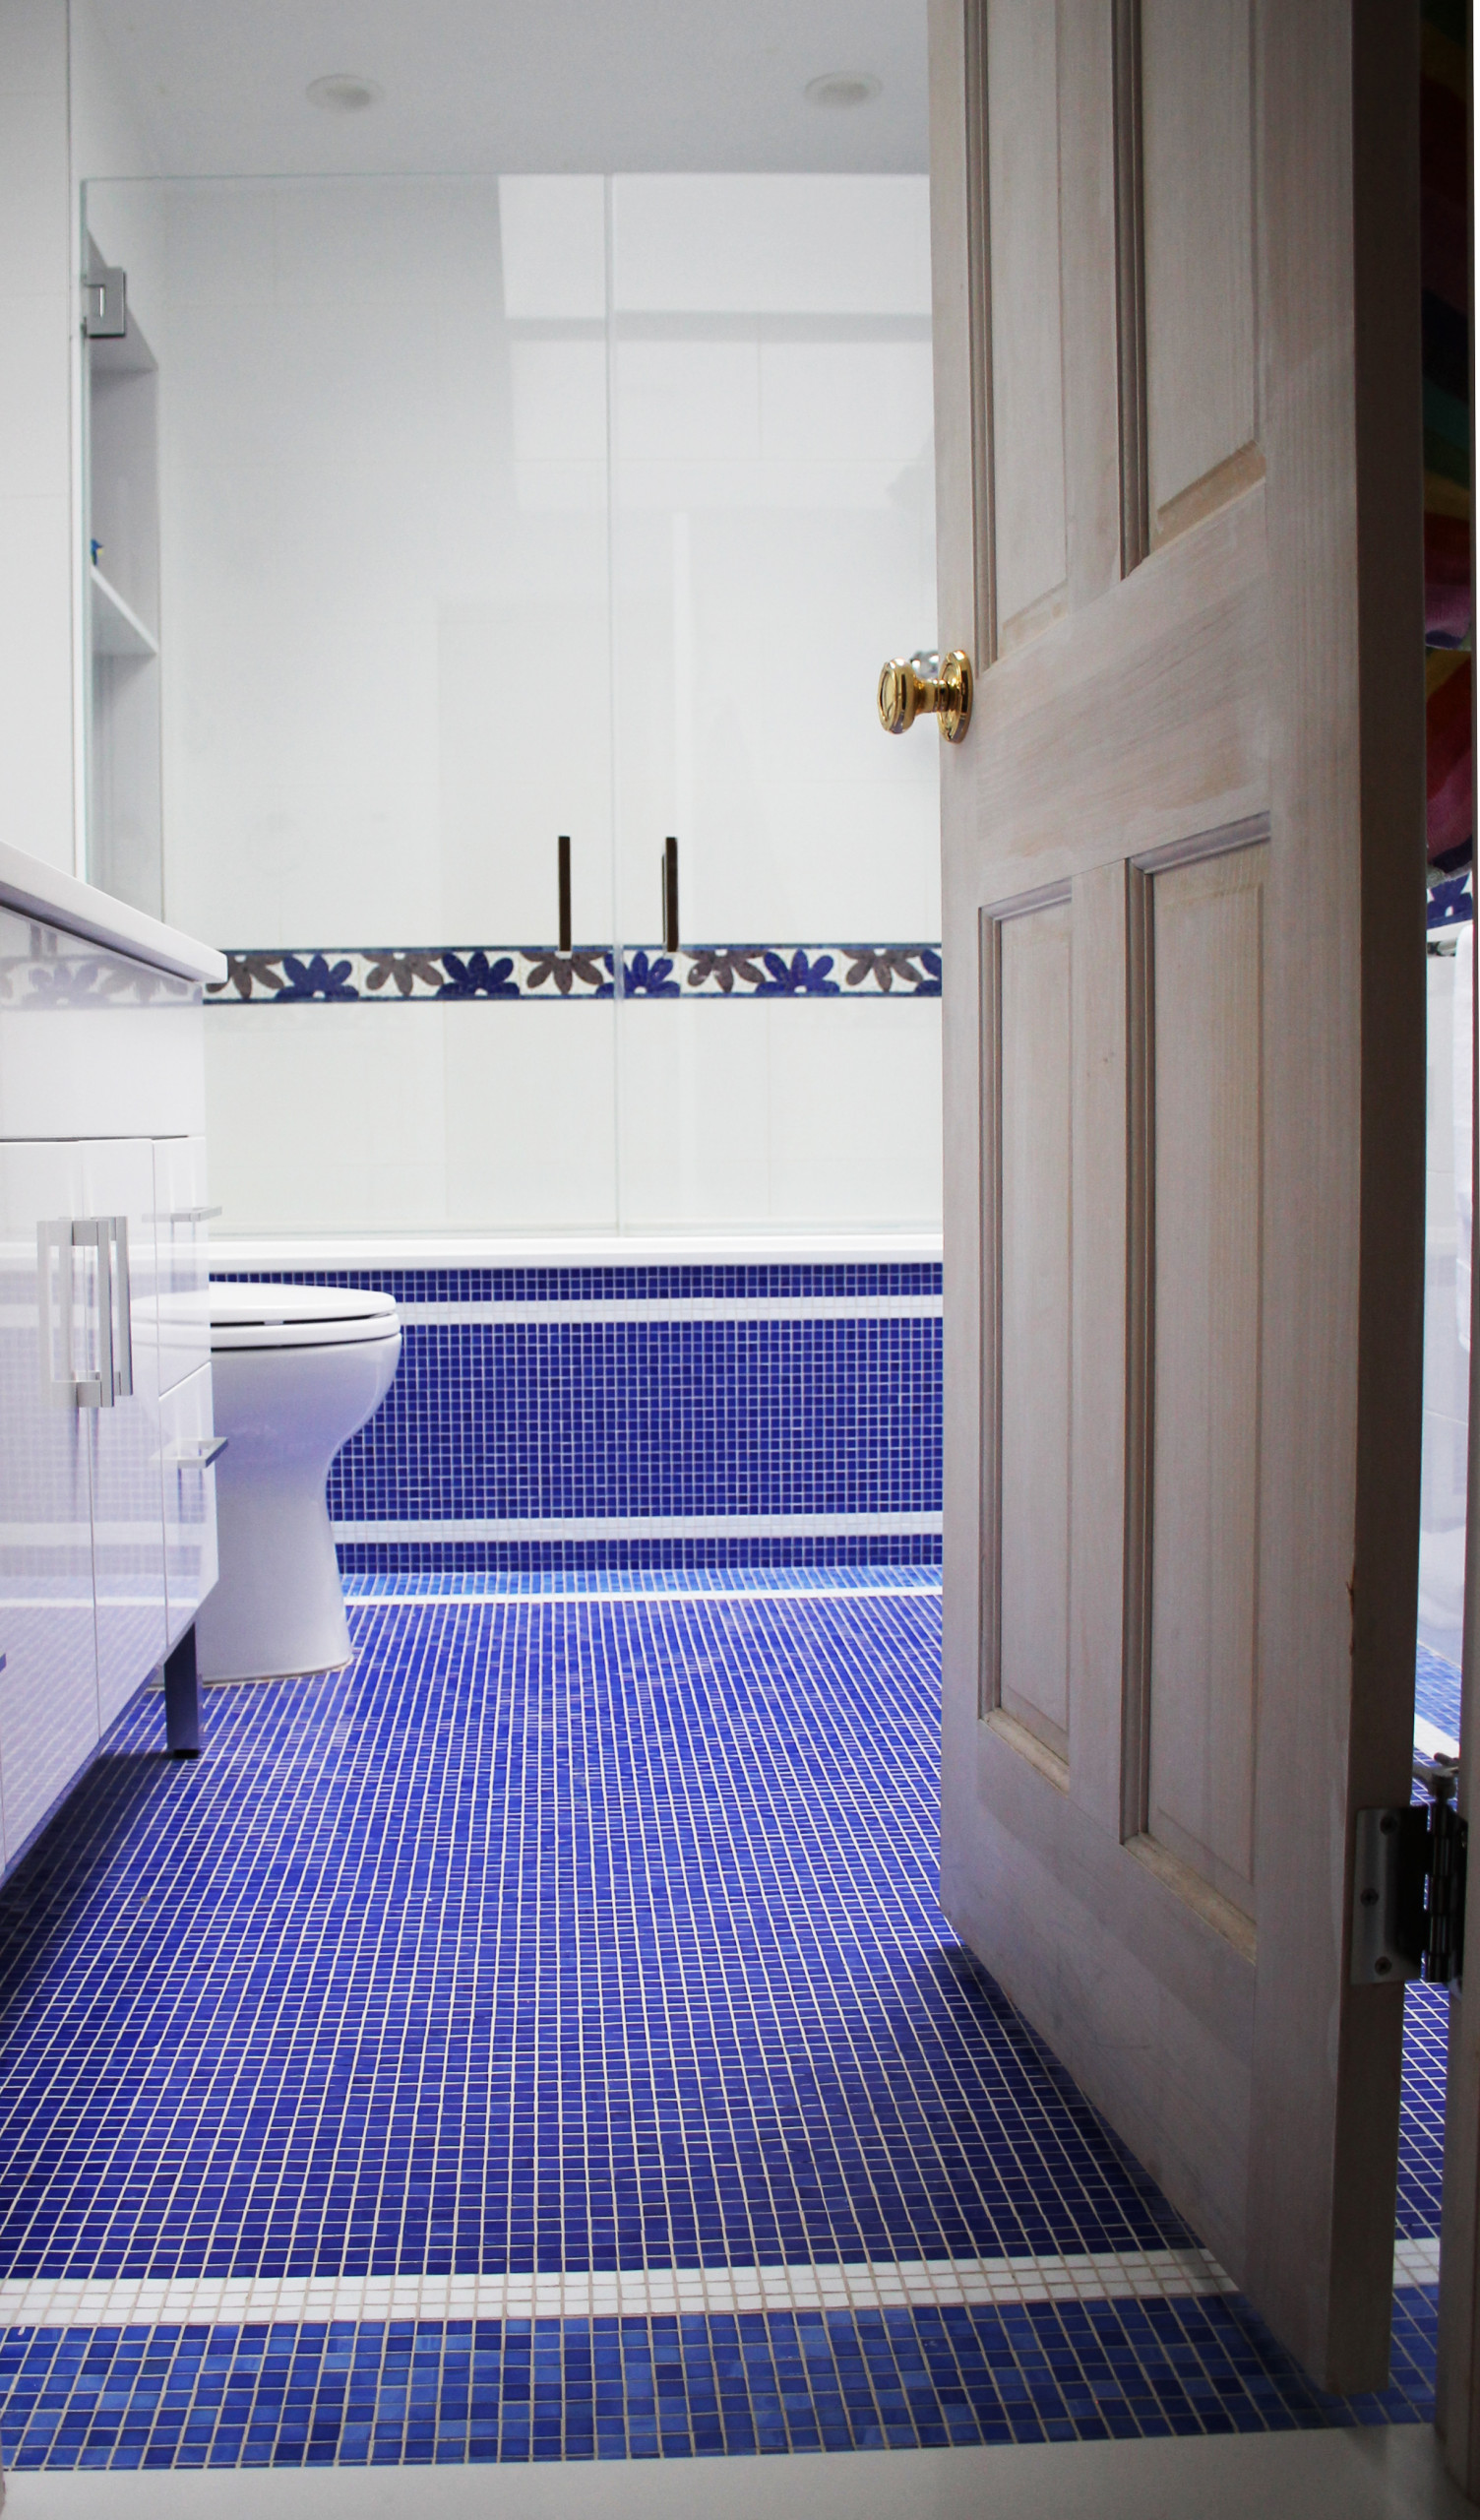 Mosaic Eclectic Bath Lawrence, NY Home